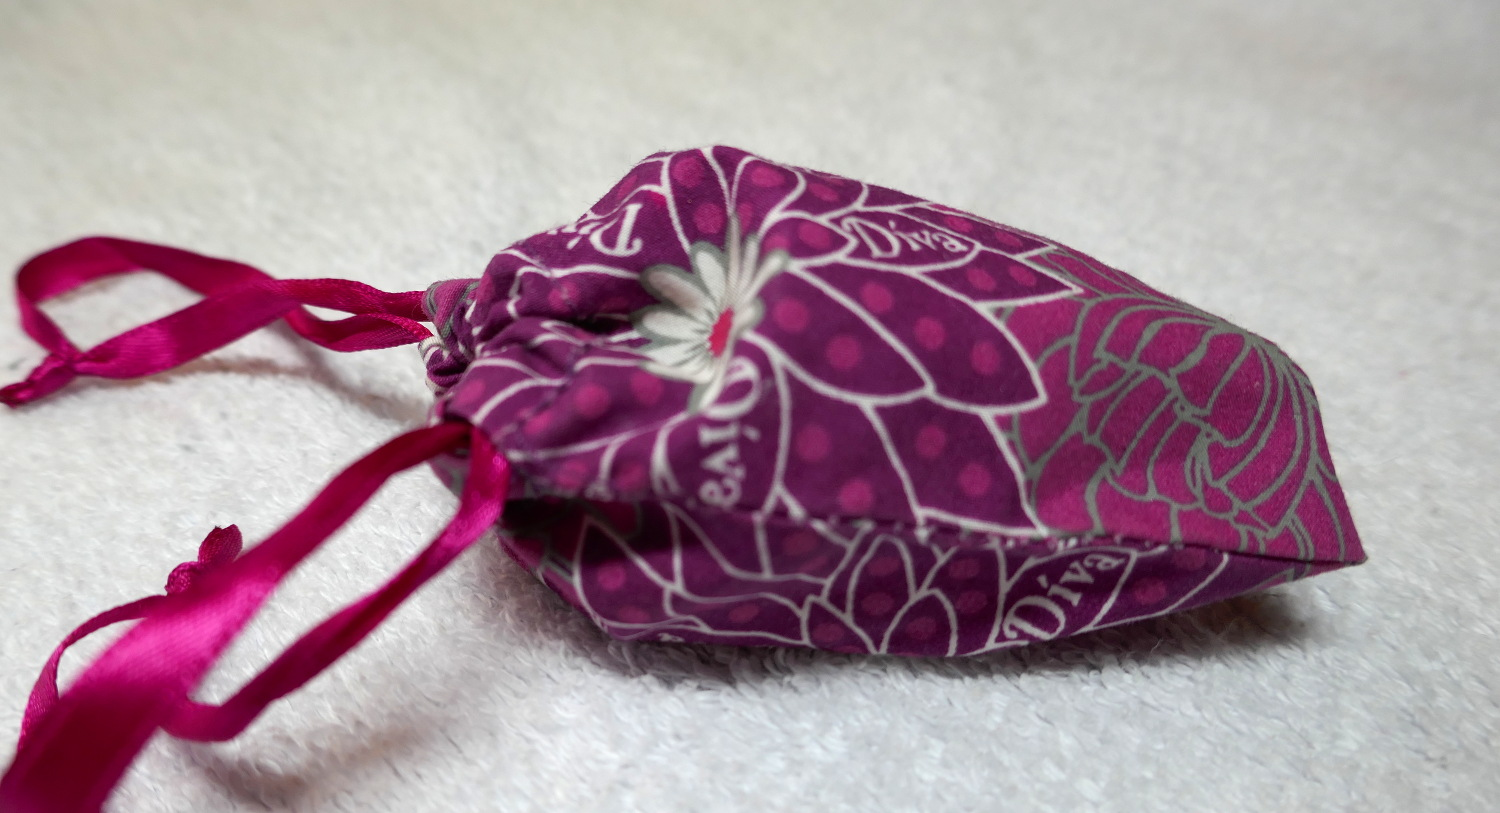 After using a menstrual cup (I use the  Diva Cup ) I wouldn't even consider using tampons!